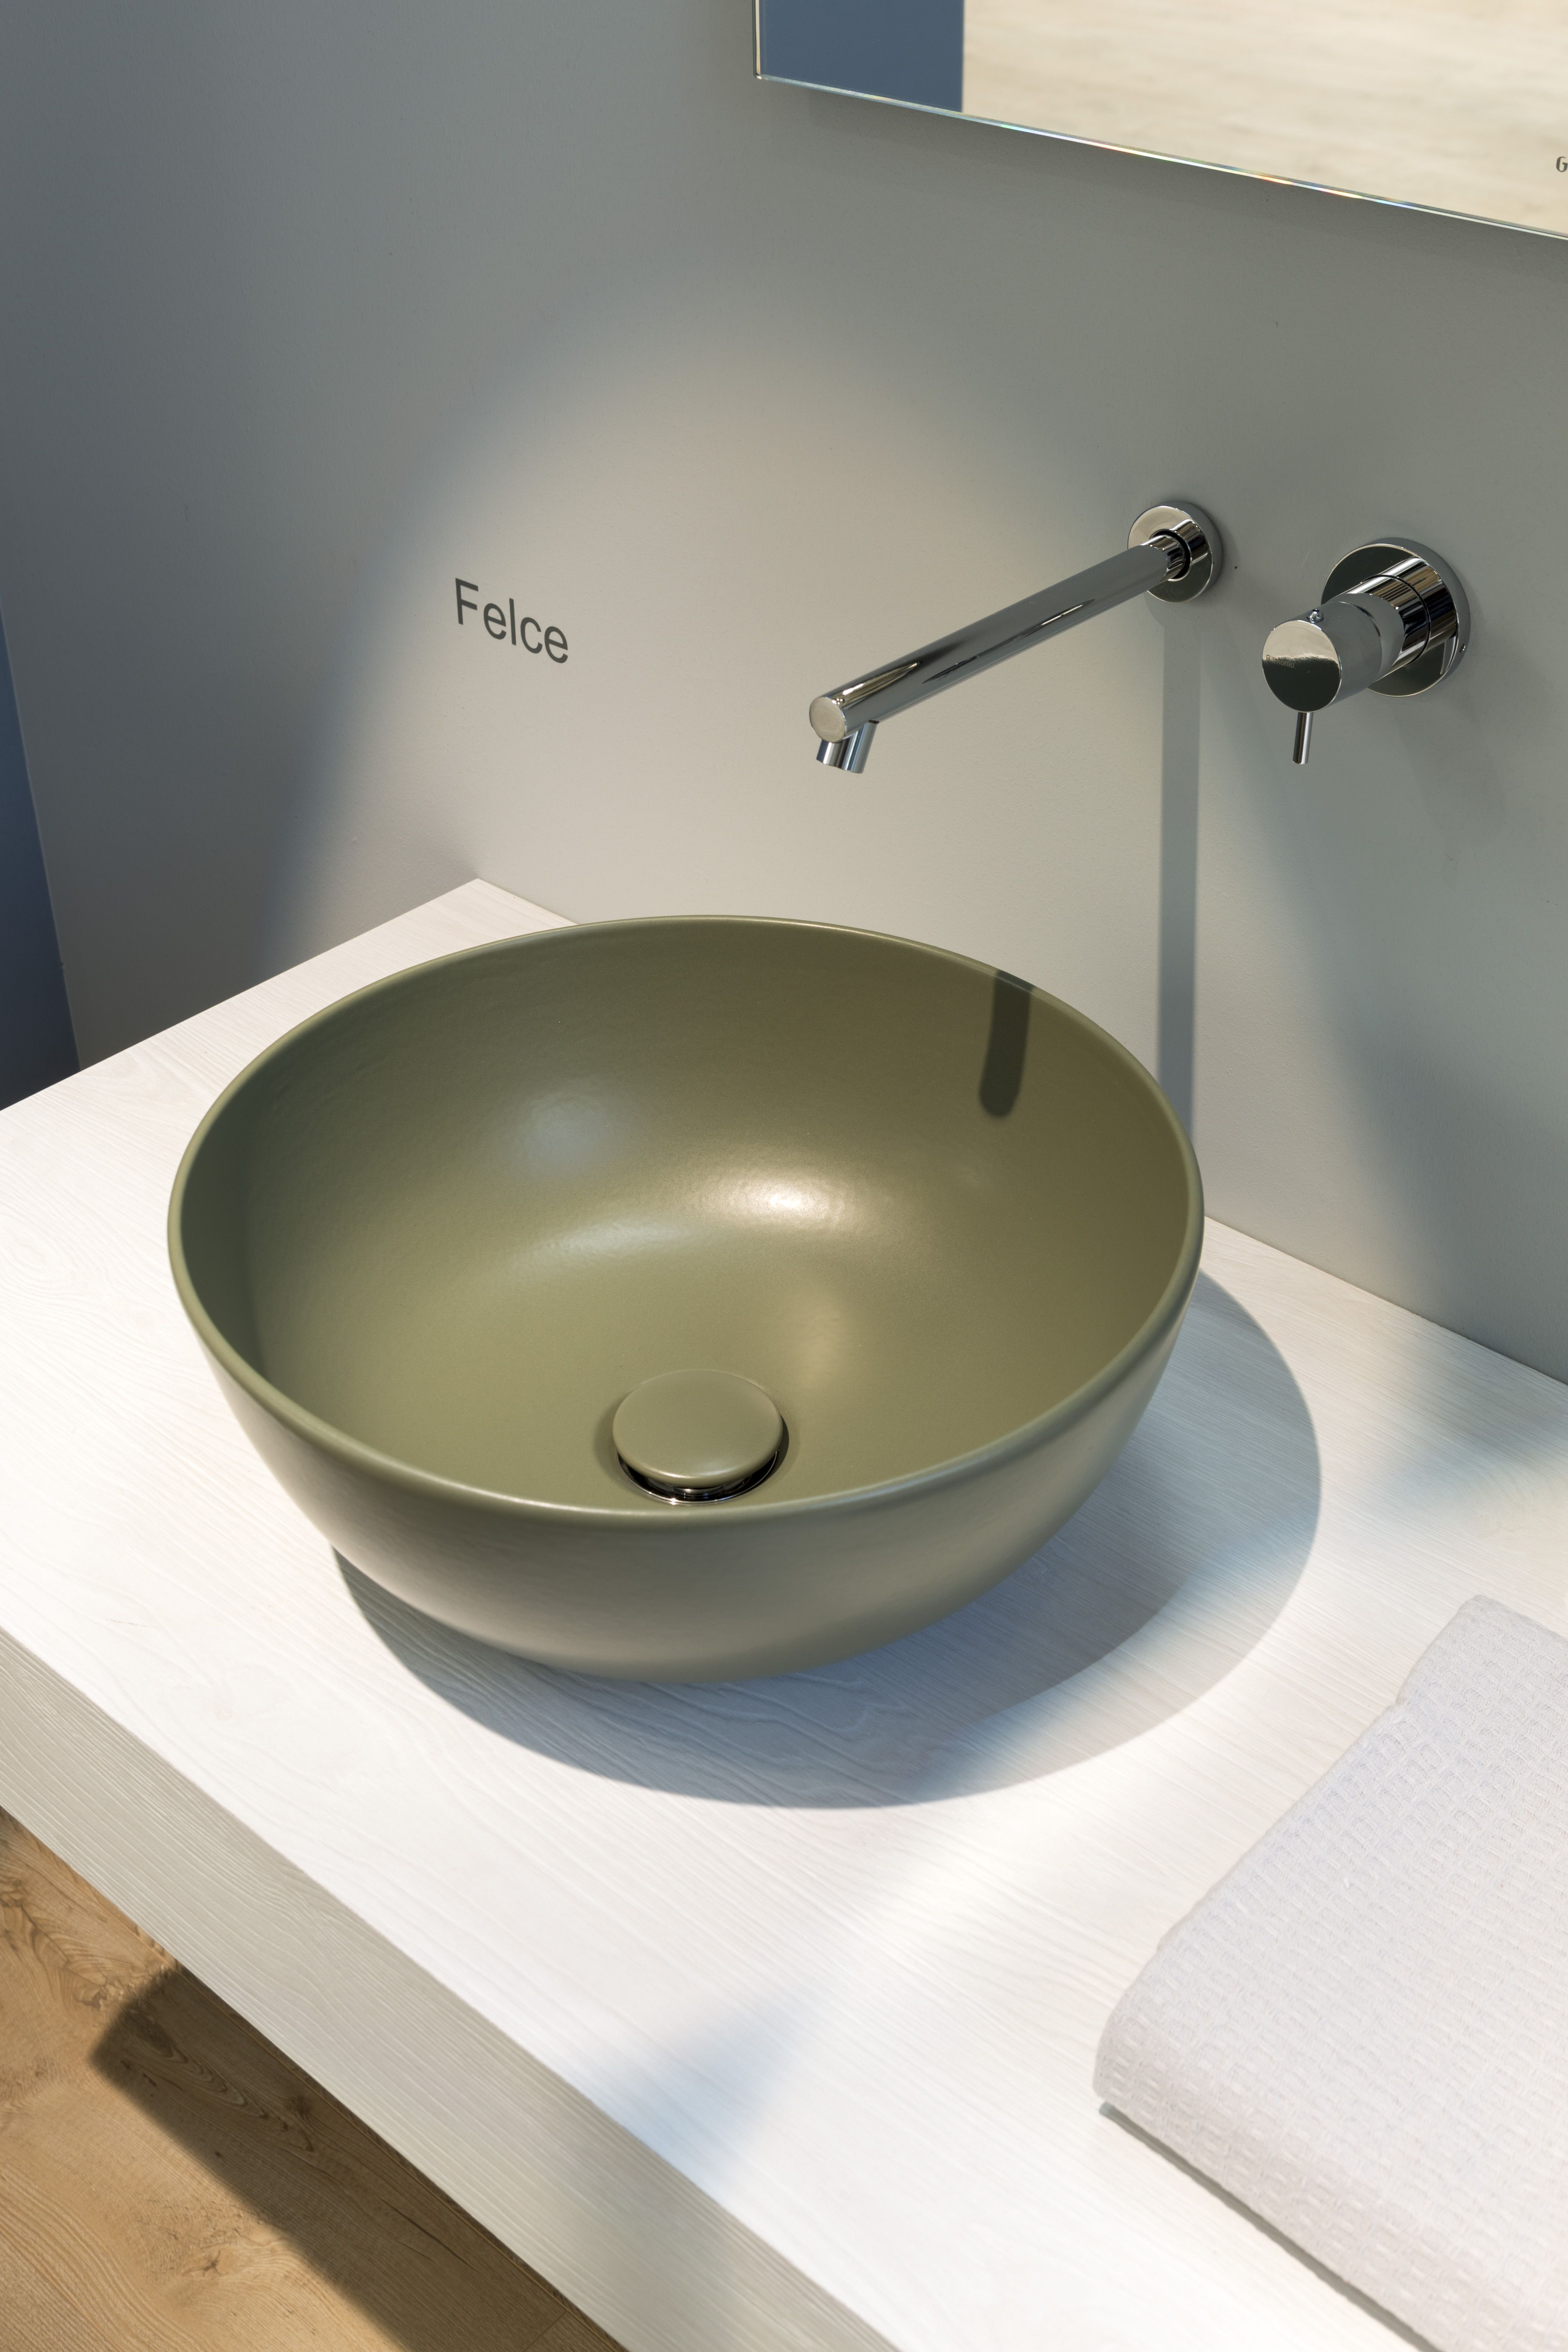 new products by ceramicaglobo from cersaie fair in bologna cersaie rh pinterest com